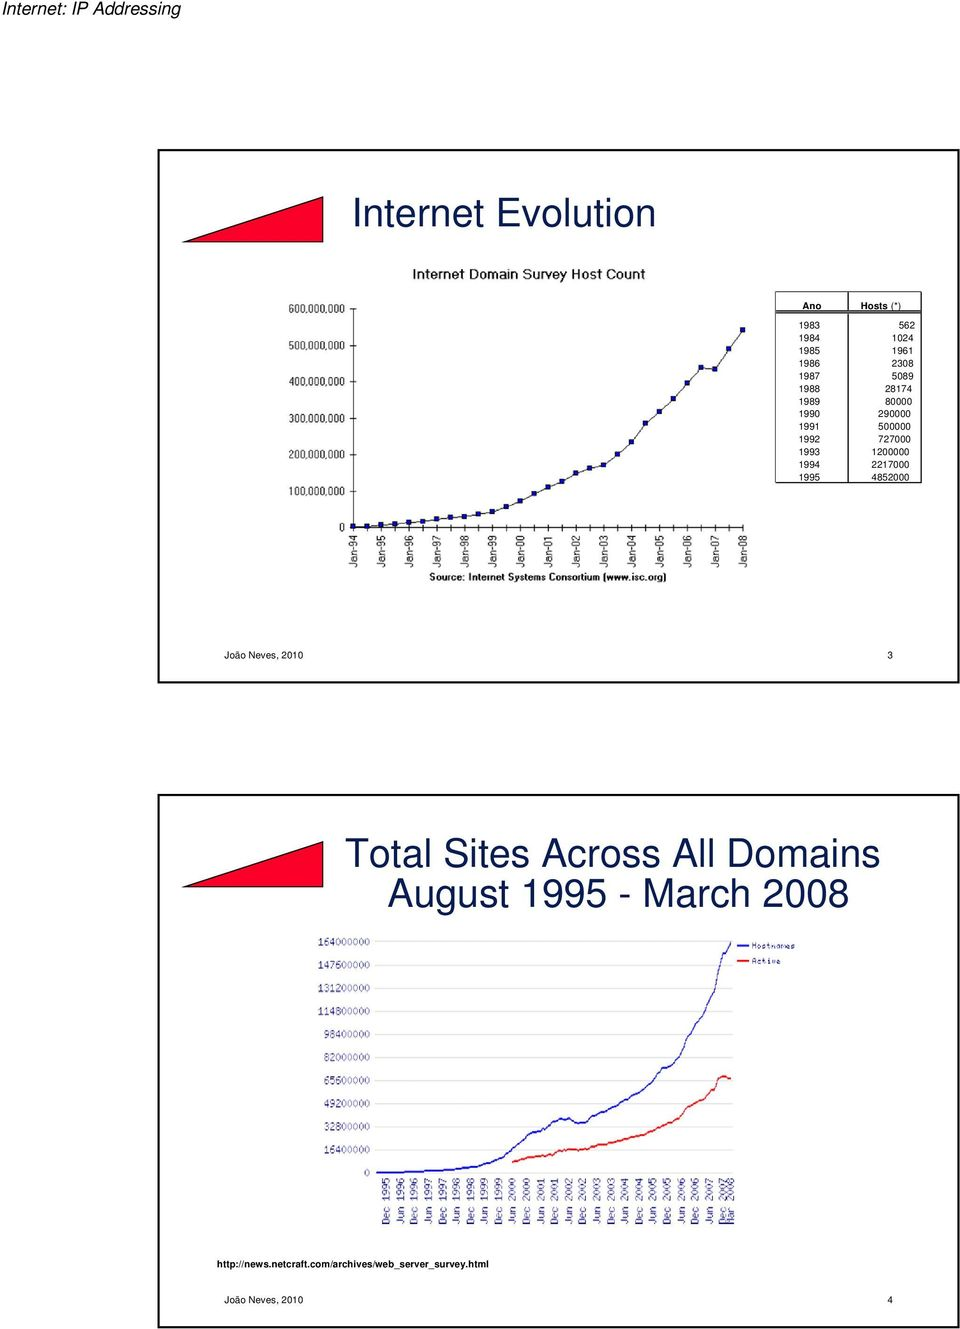 2217000 1995 4852000 João Neves, 2010 3 Total Sites Across All Domains August 1995